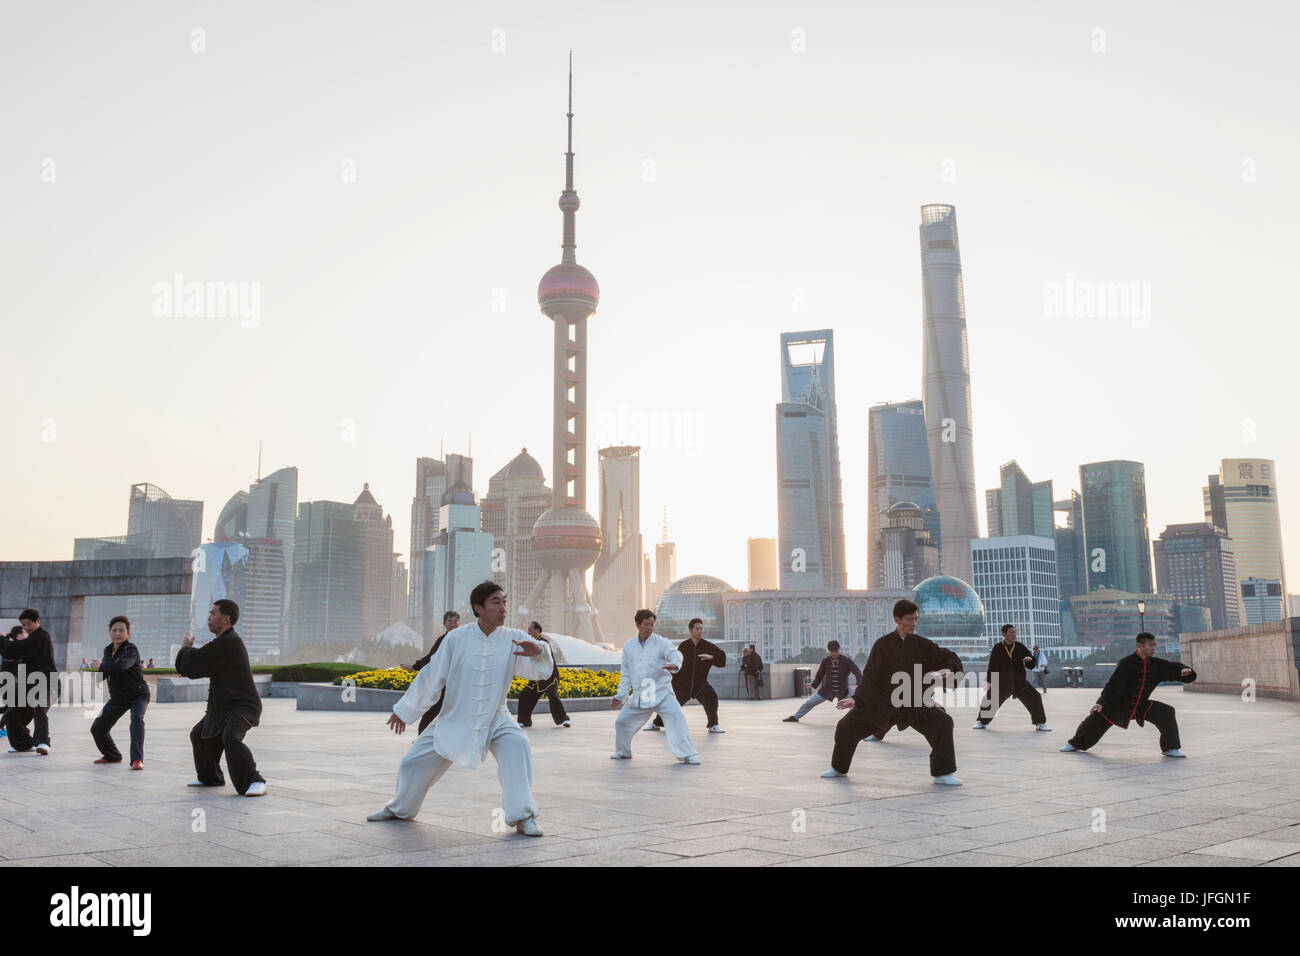 China, Shanghai, The Bund, Group Practicing Tai chi - Stock Image